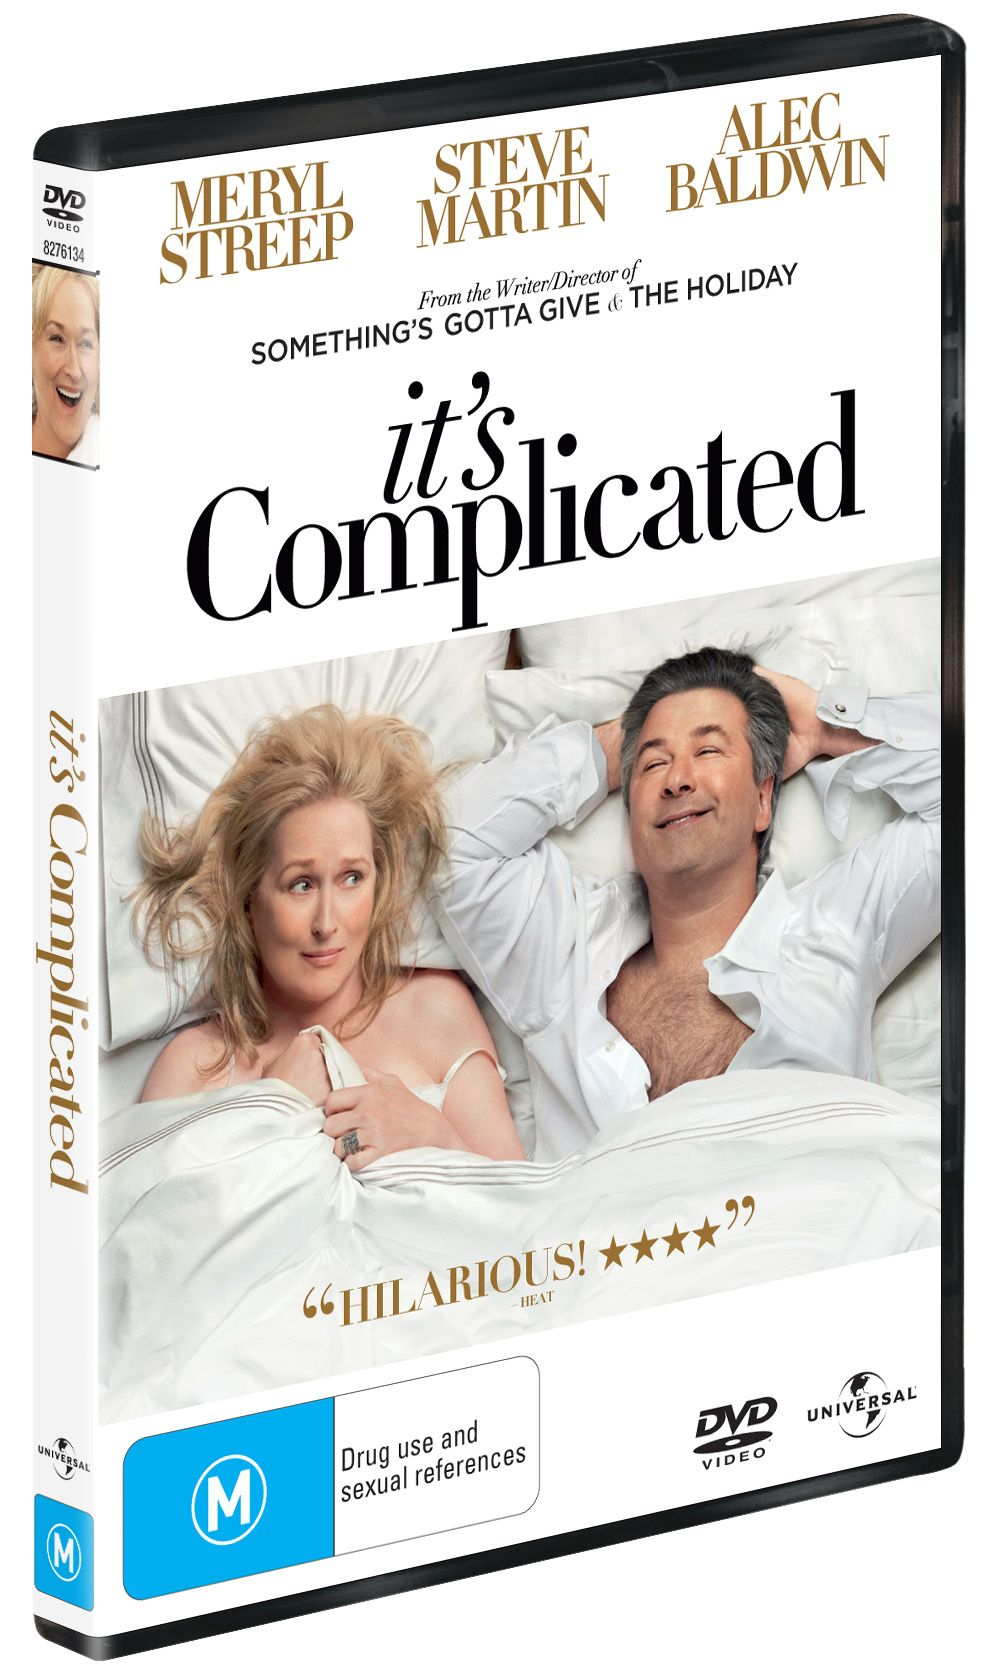 Win 1 of 5 Copies of It's Complicated on DVD!